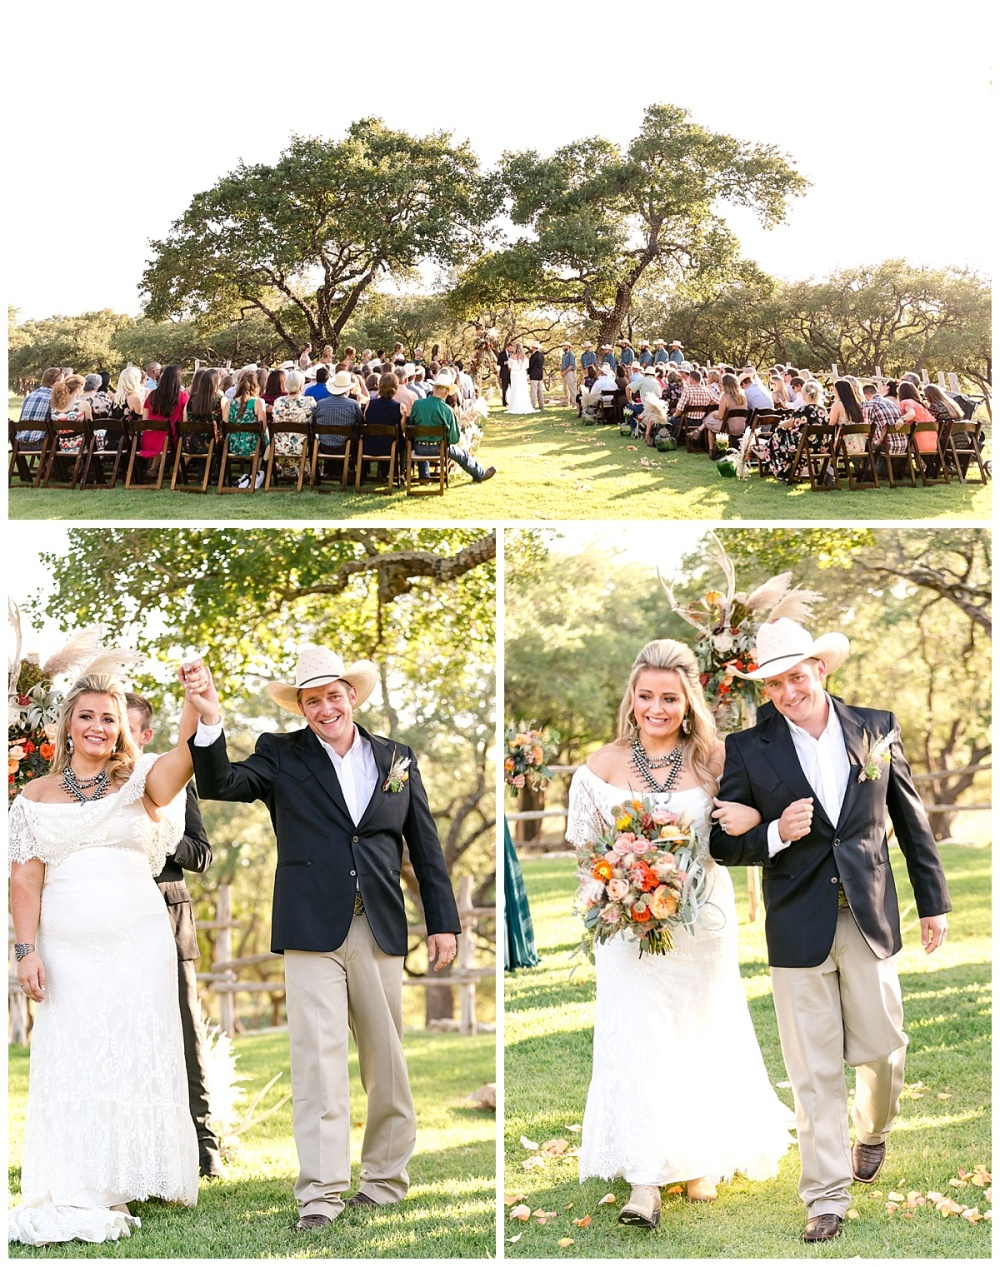 Texas-Wedding-Photographer-Braded-T-Ranch-Kendalia-Bride-Groom-Southwestern-Style-Carly-Barton-Photography-Vogt_0035.jpg